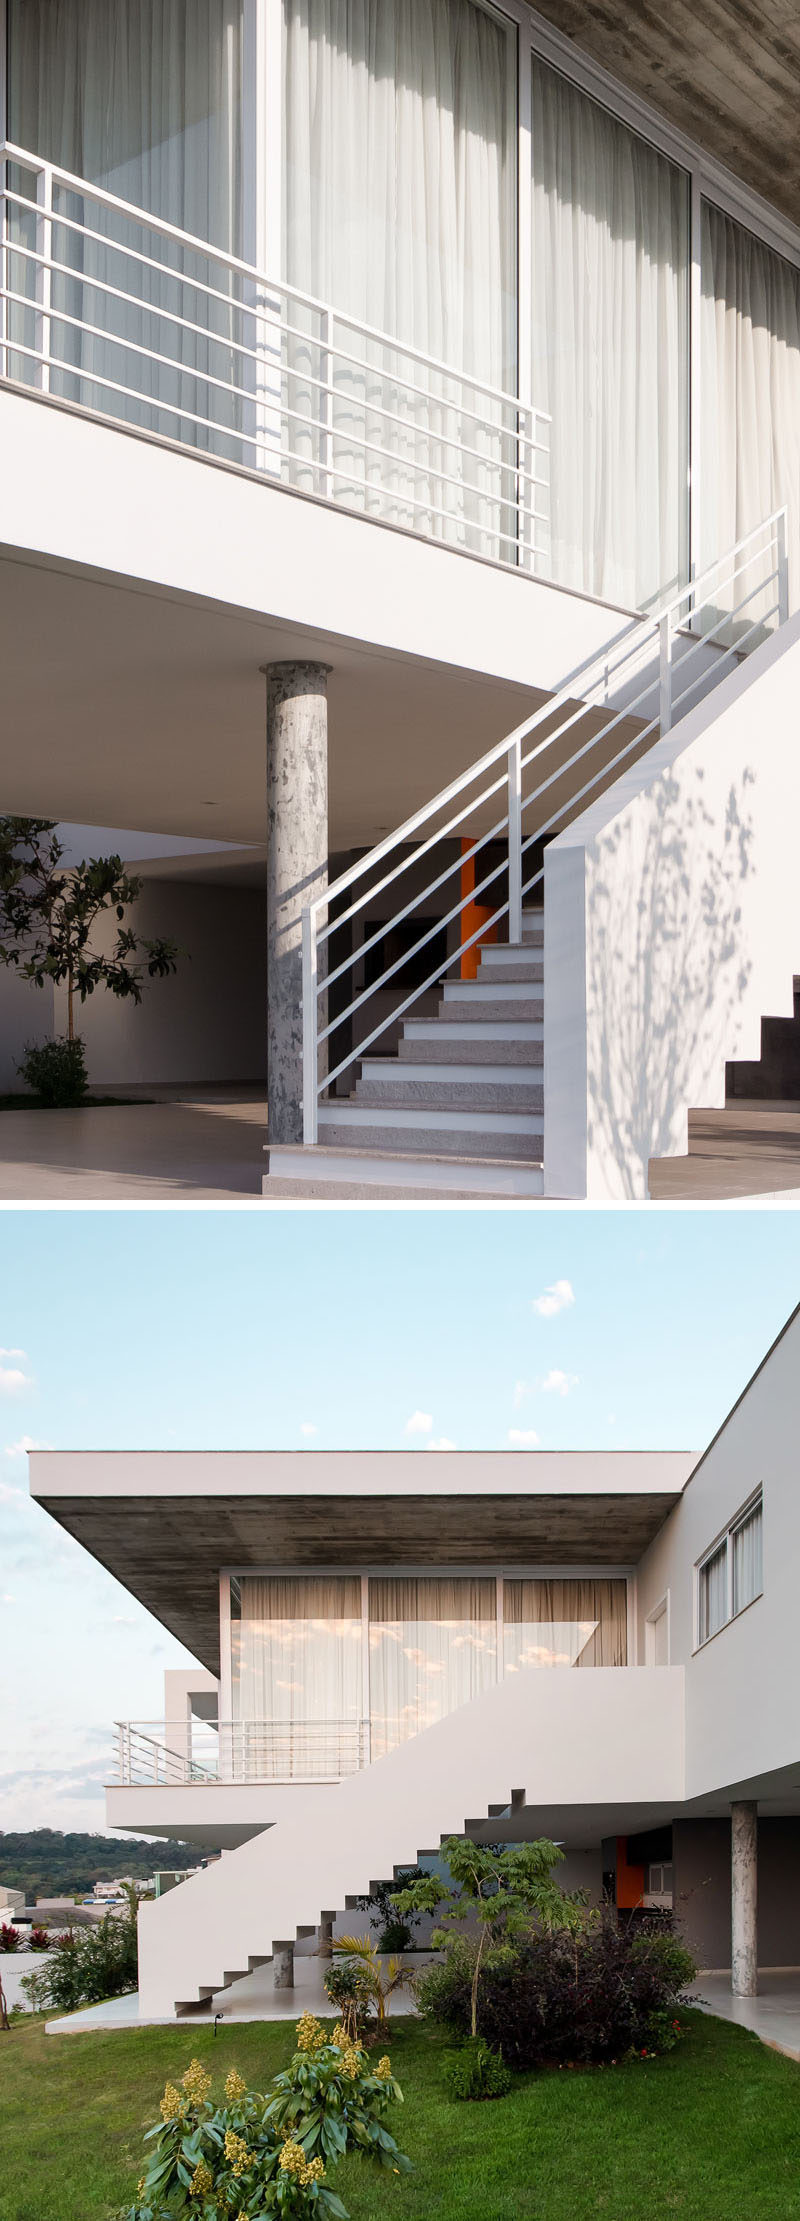 This house has white exterior concrete stairs that lead from the living area down to the backyard.